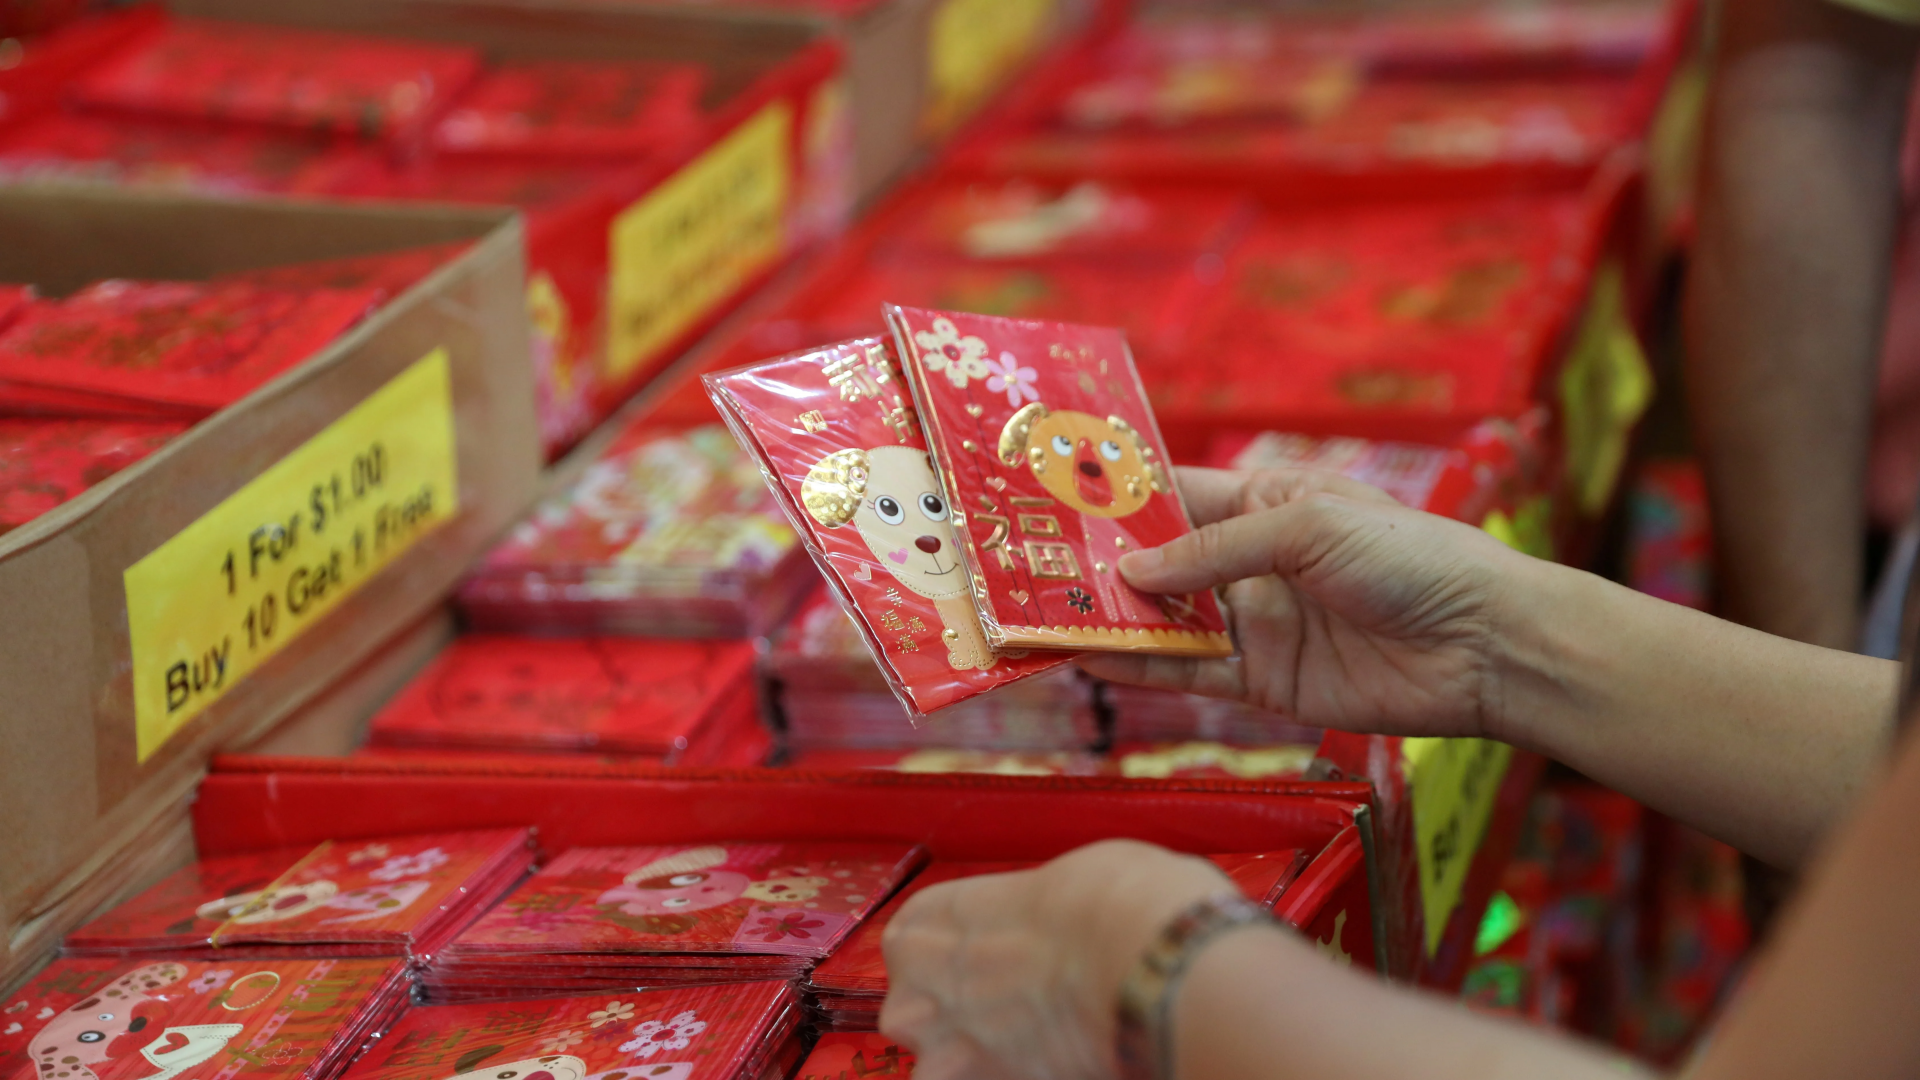 singapore promotes digital monetary gifts facilitating the gift giving tradition in lunar new year